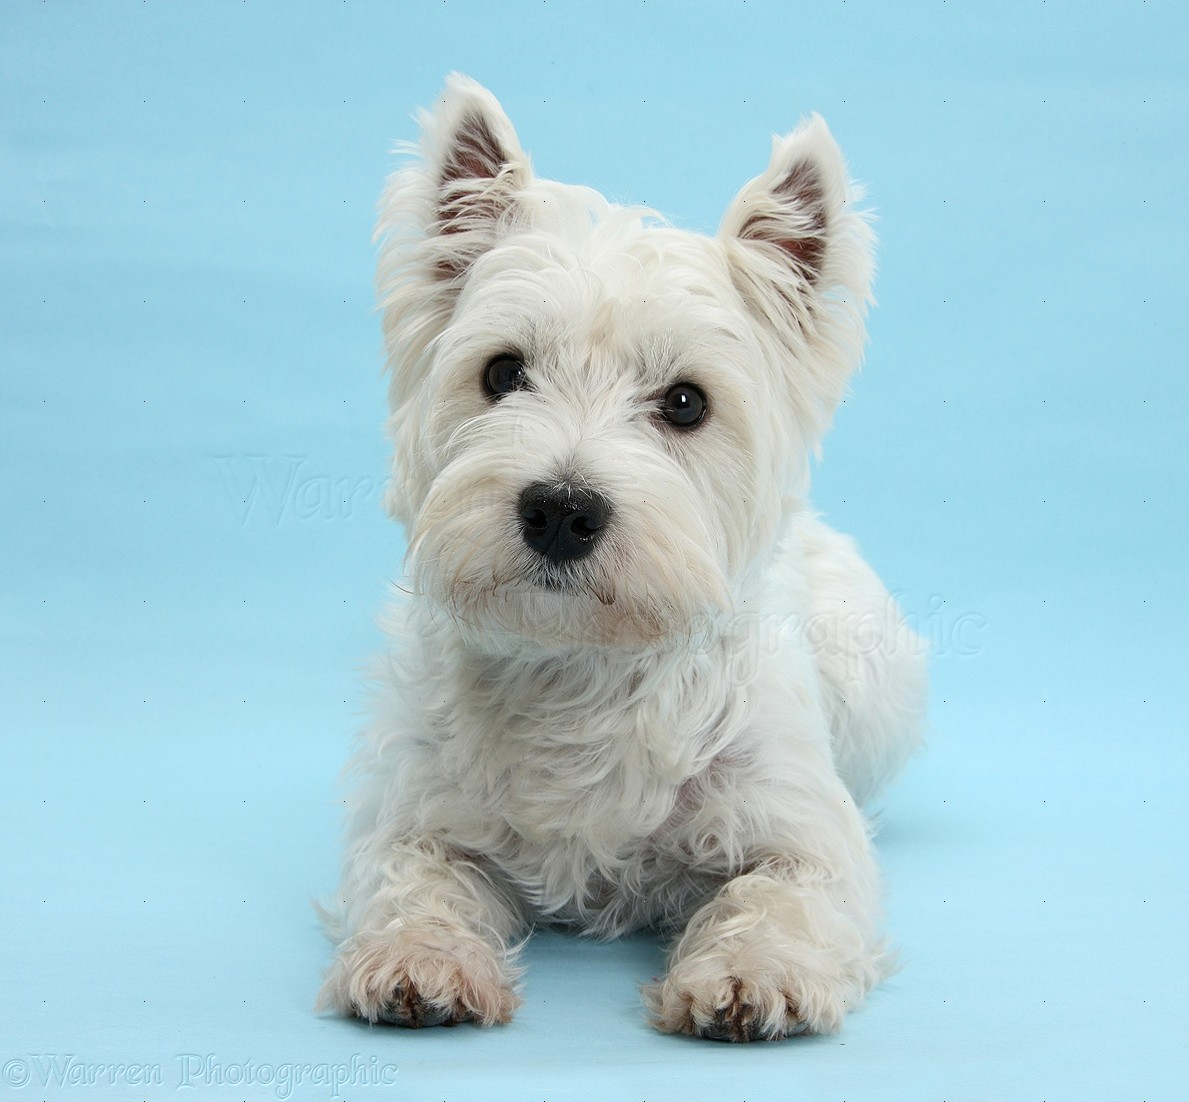 Cute dogs photographs westie lying with head up wp20807 - Pictures of westie dogs ...